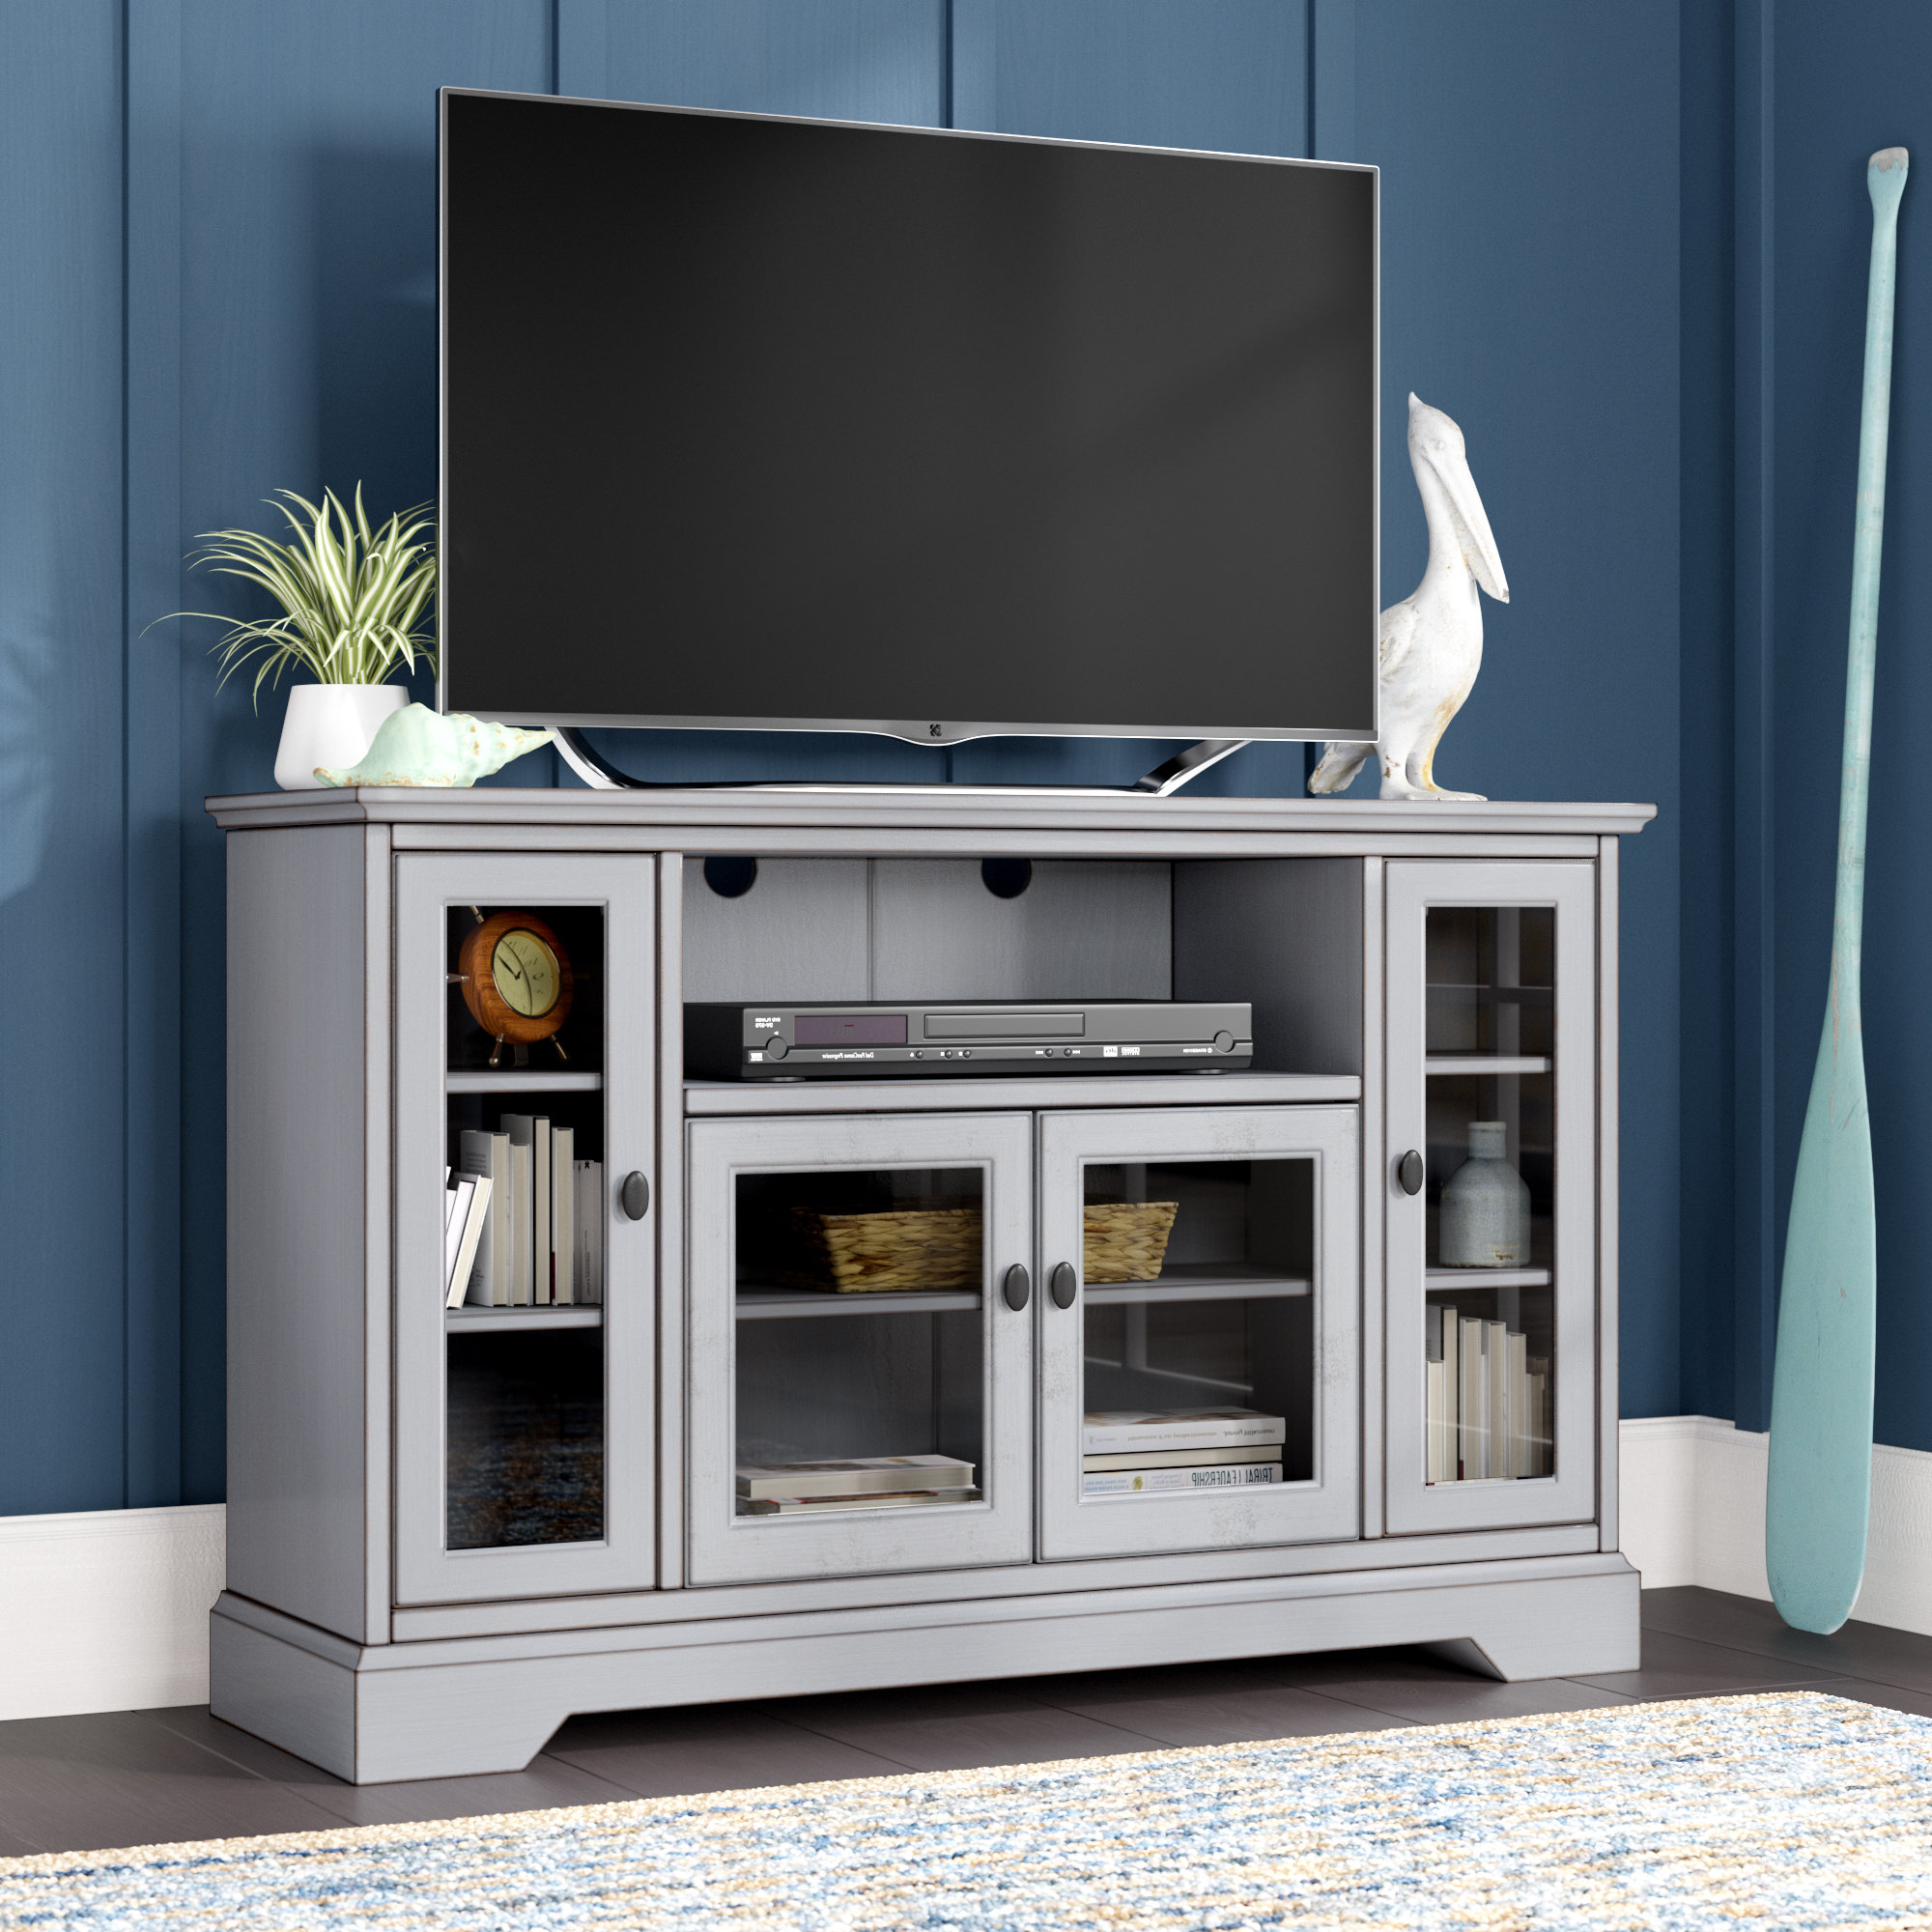 Tall Tv Stands You'll Love | Wayfair For Canyon 54 Inch Tv Stands (View 12 of 20)